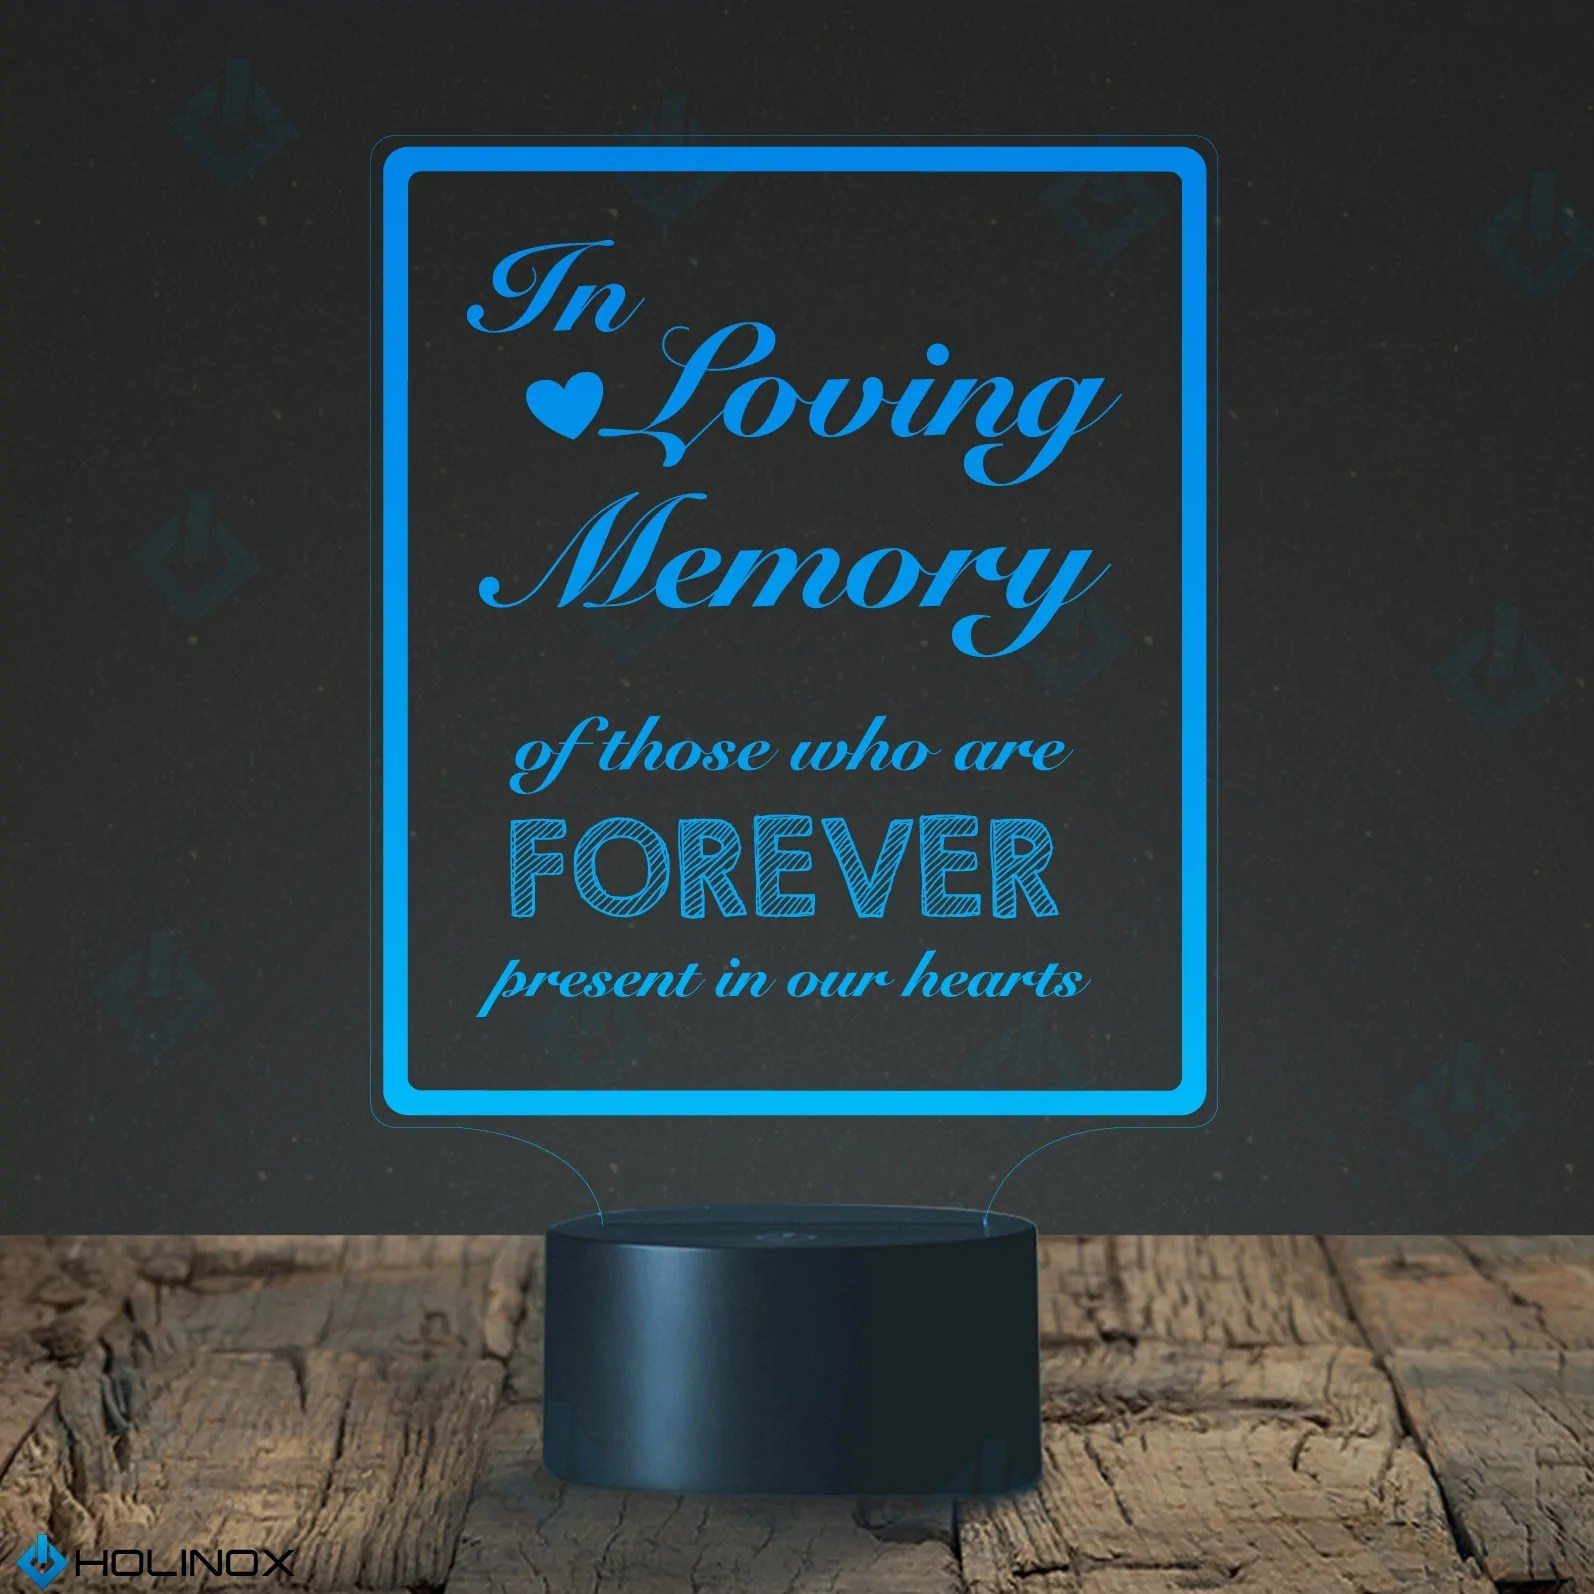 in loving memory led lamp with usb connector calligraphy text decal holinox [ 1594 x 1594 Pixel ]